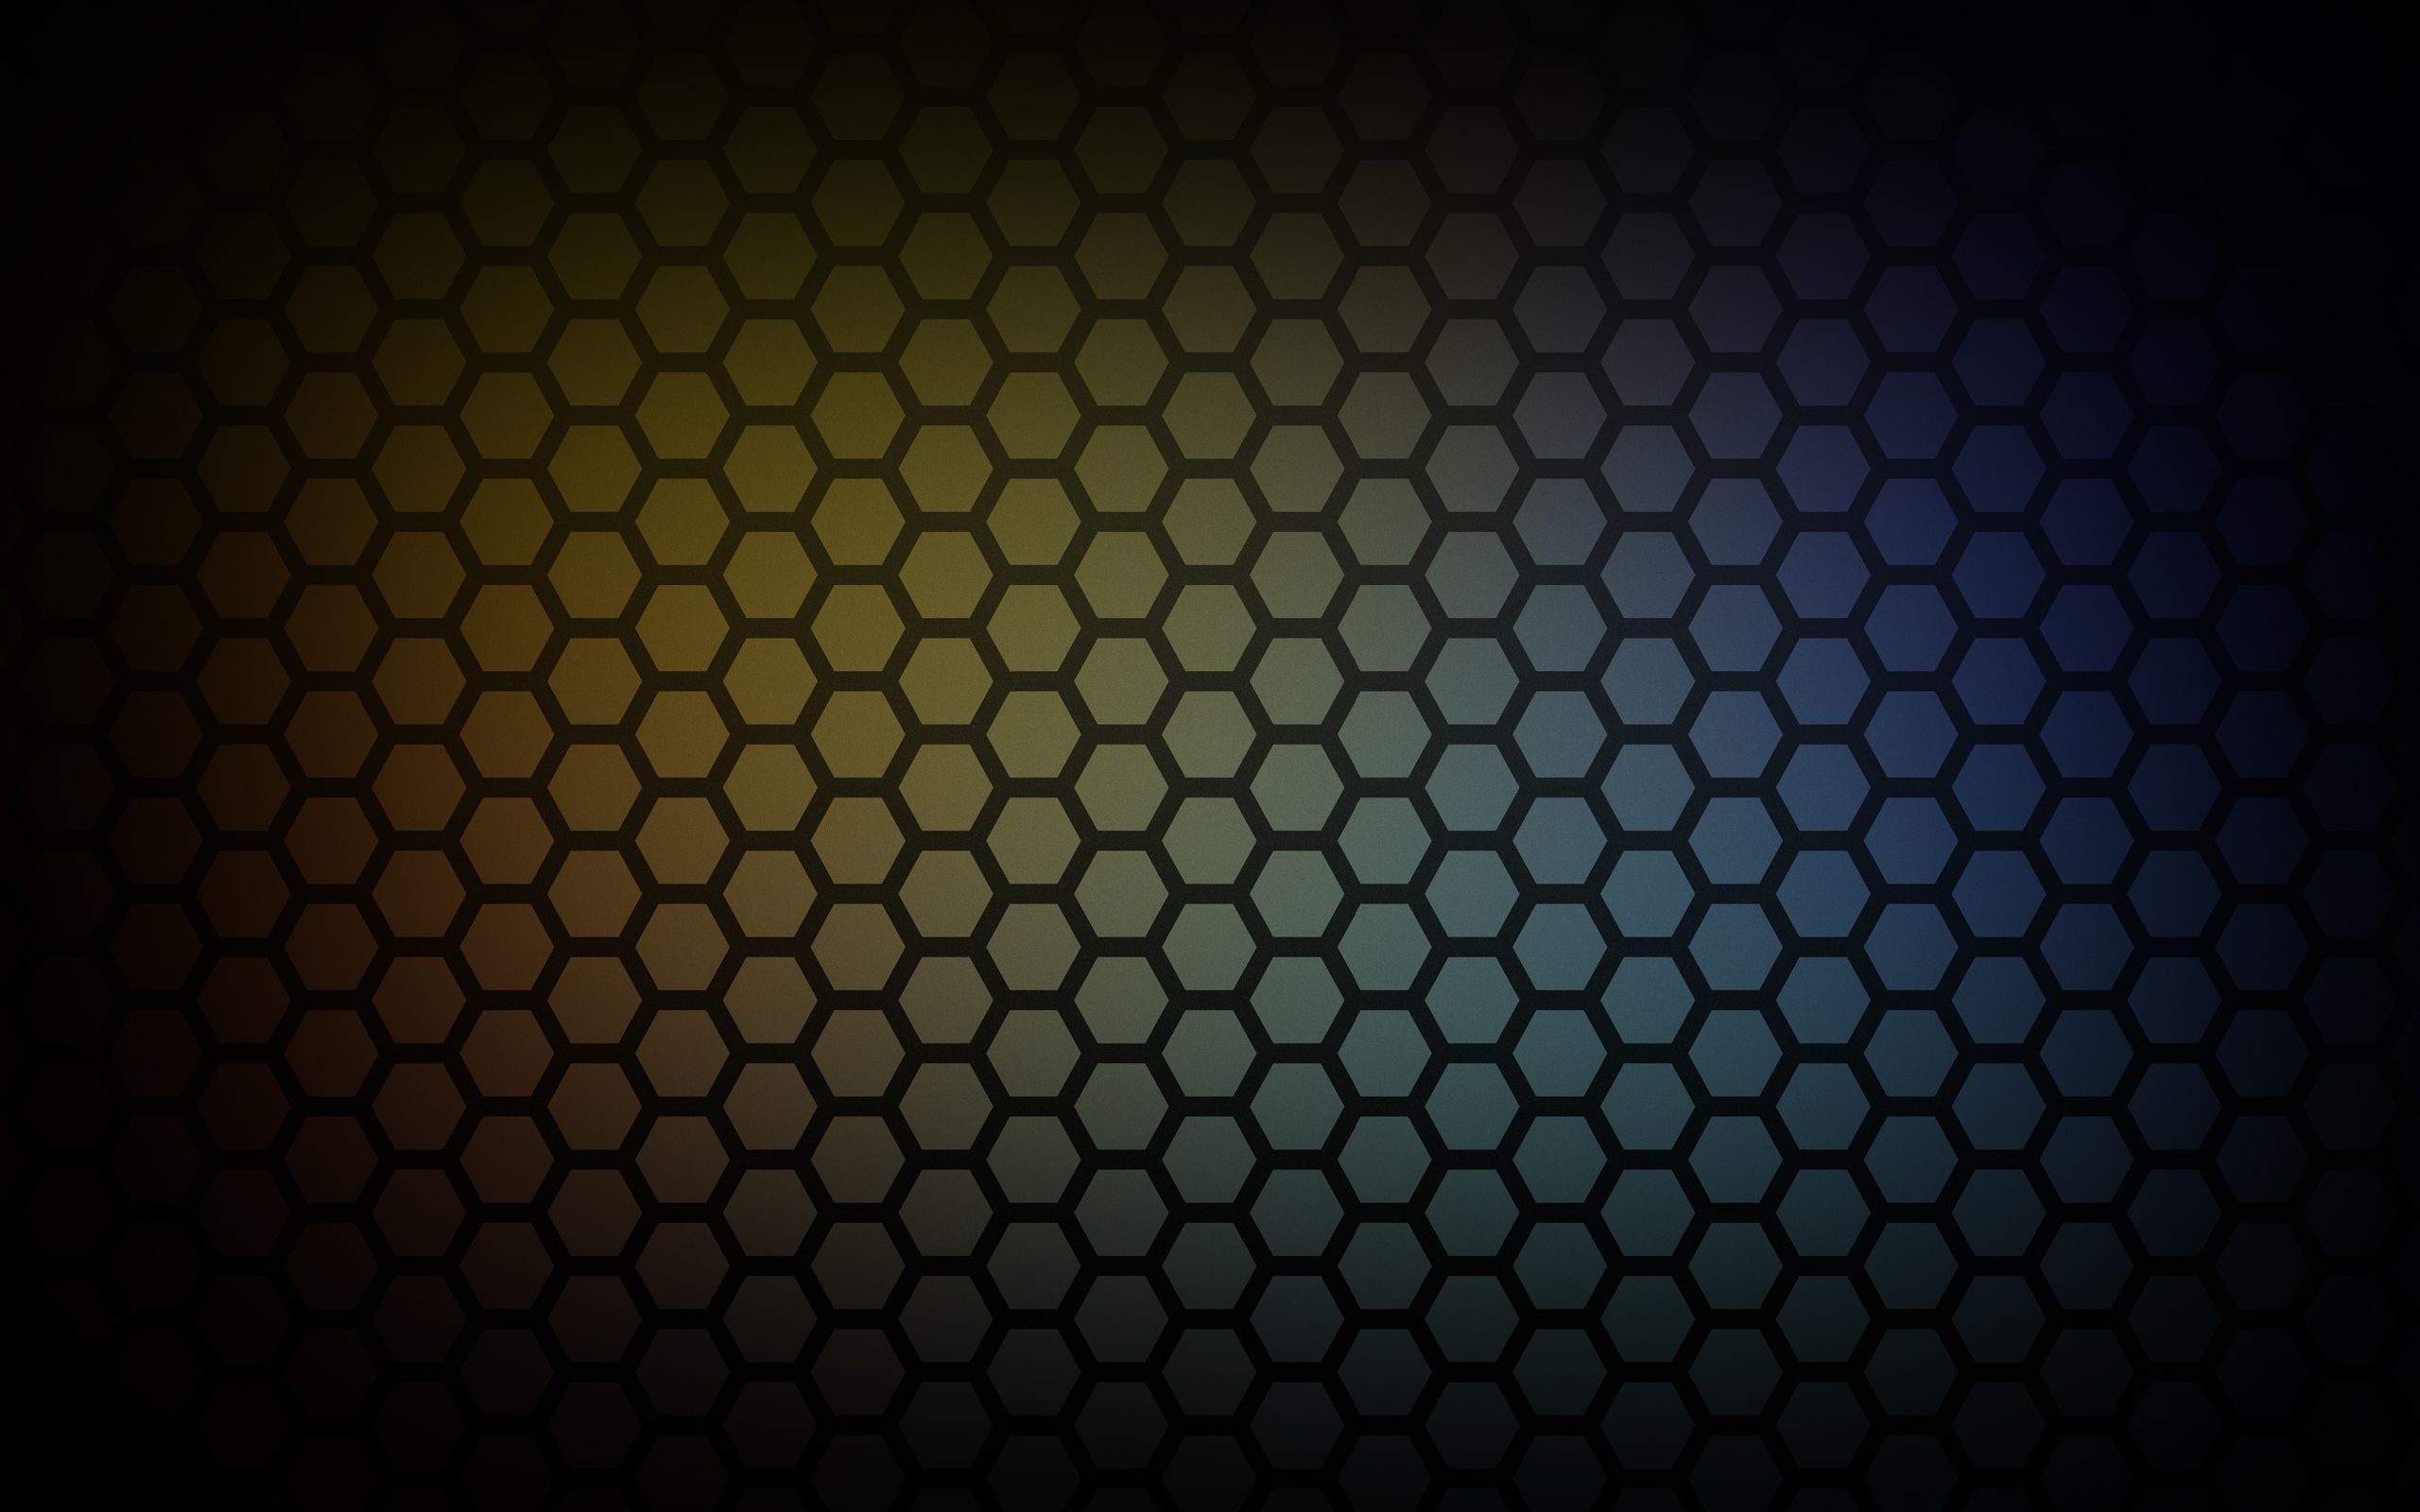 Res: 2560x1600, Honeycomb #6888008 - HD Wallpapers